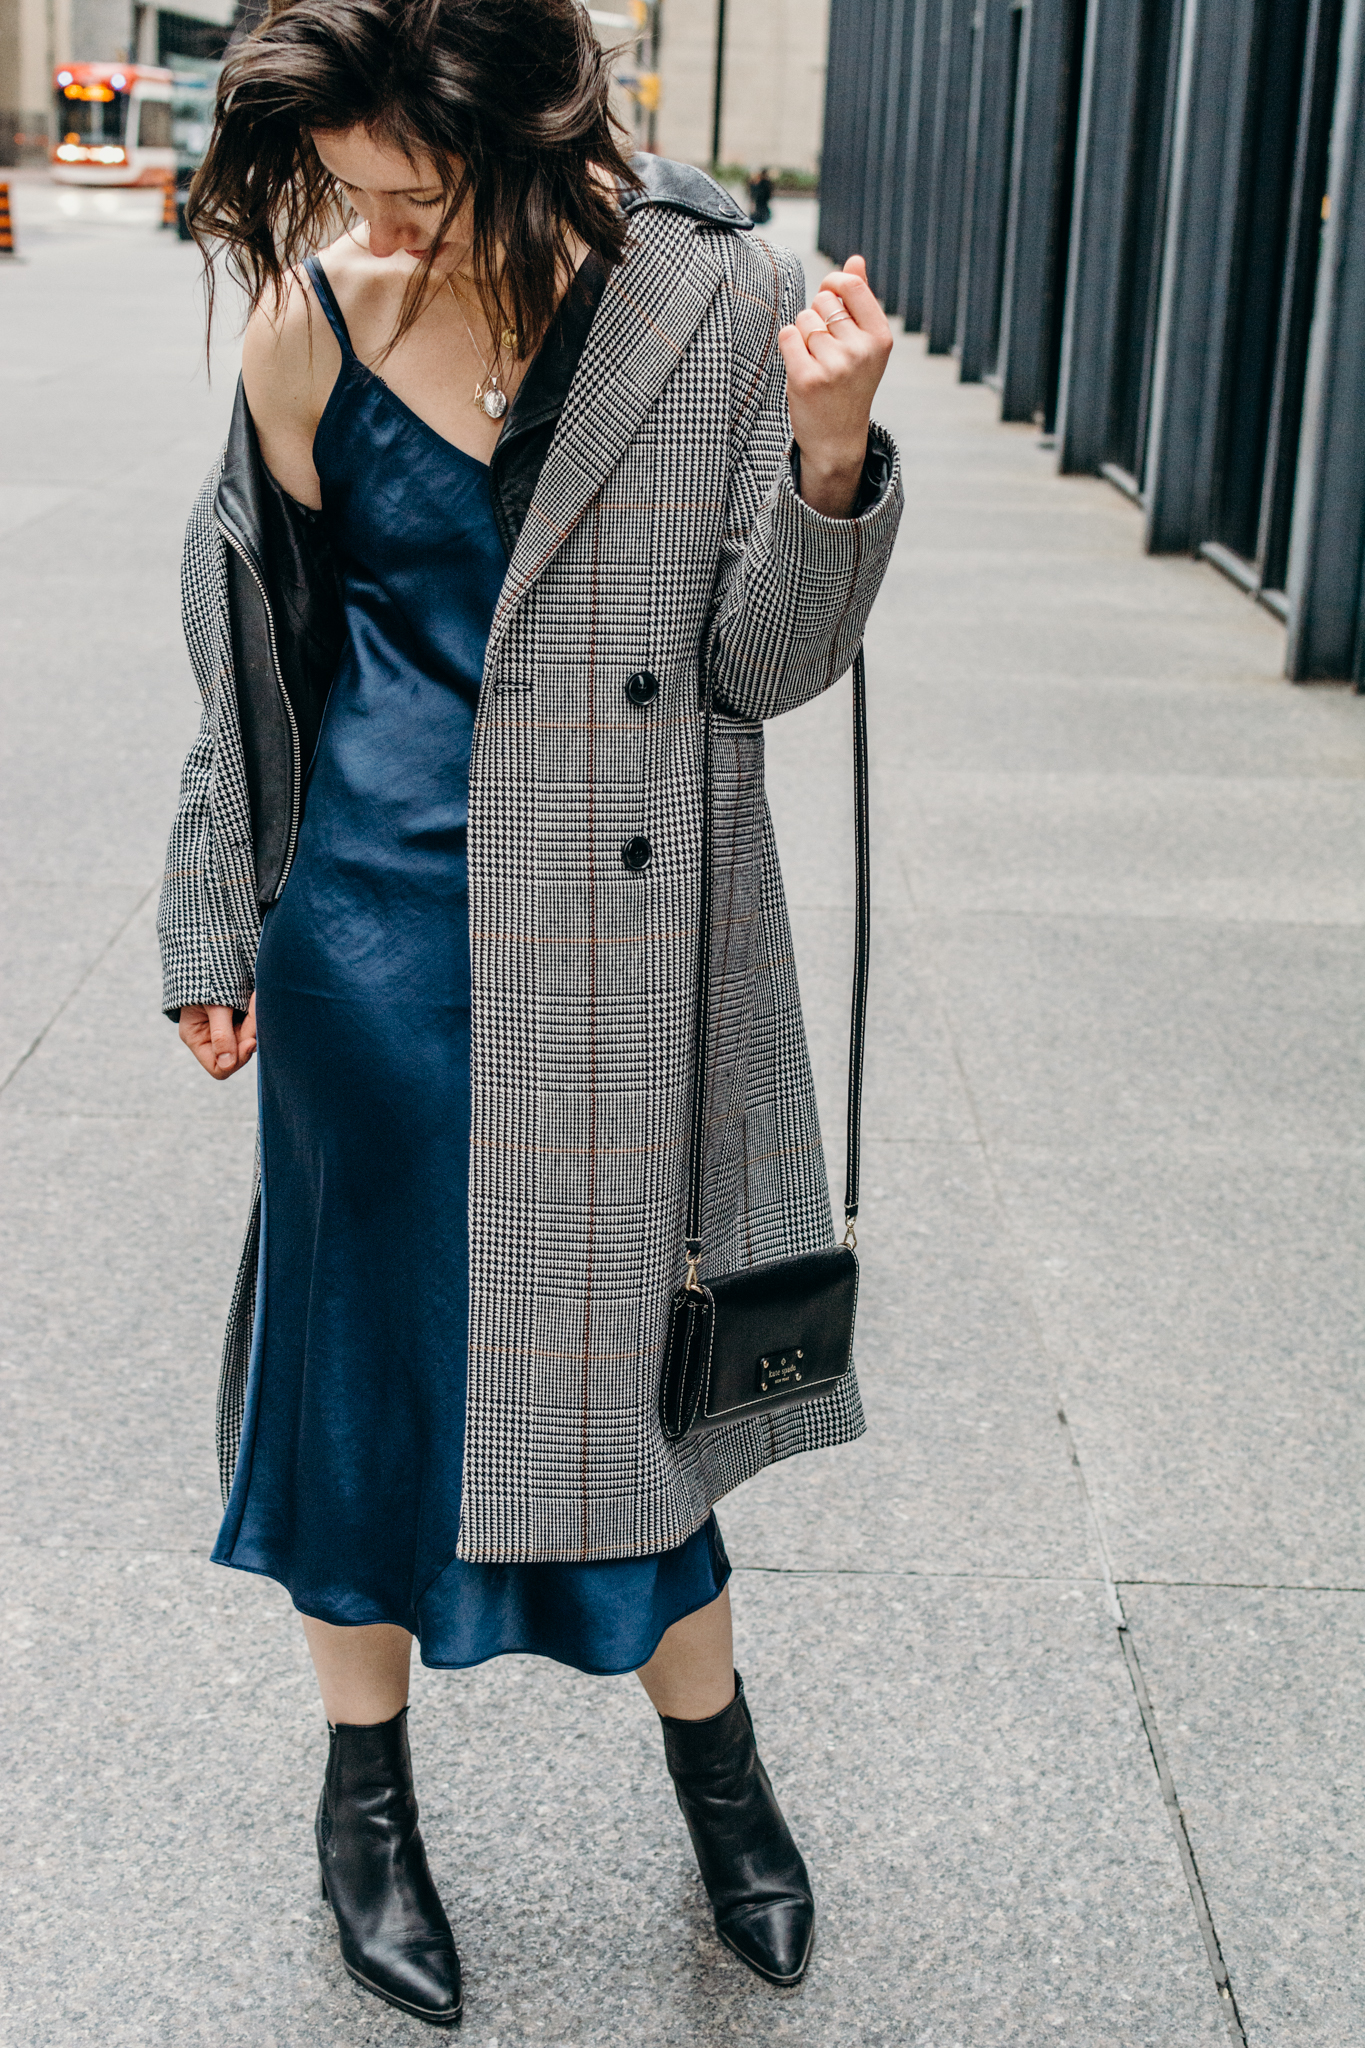 aritzia christine dress style apotheca slip dress fashion blogger style blogger zara booties